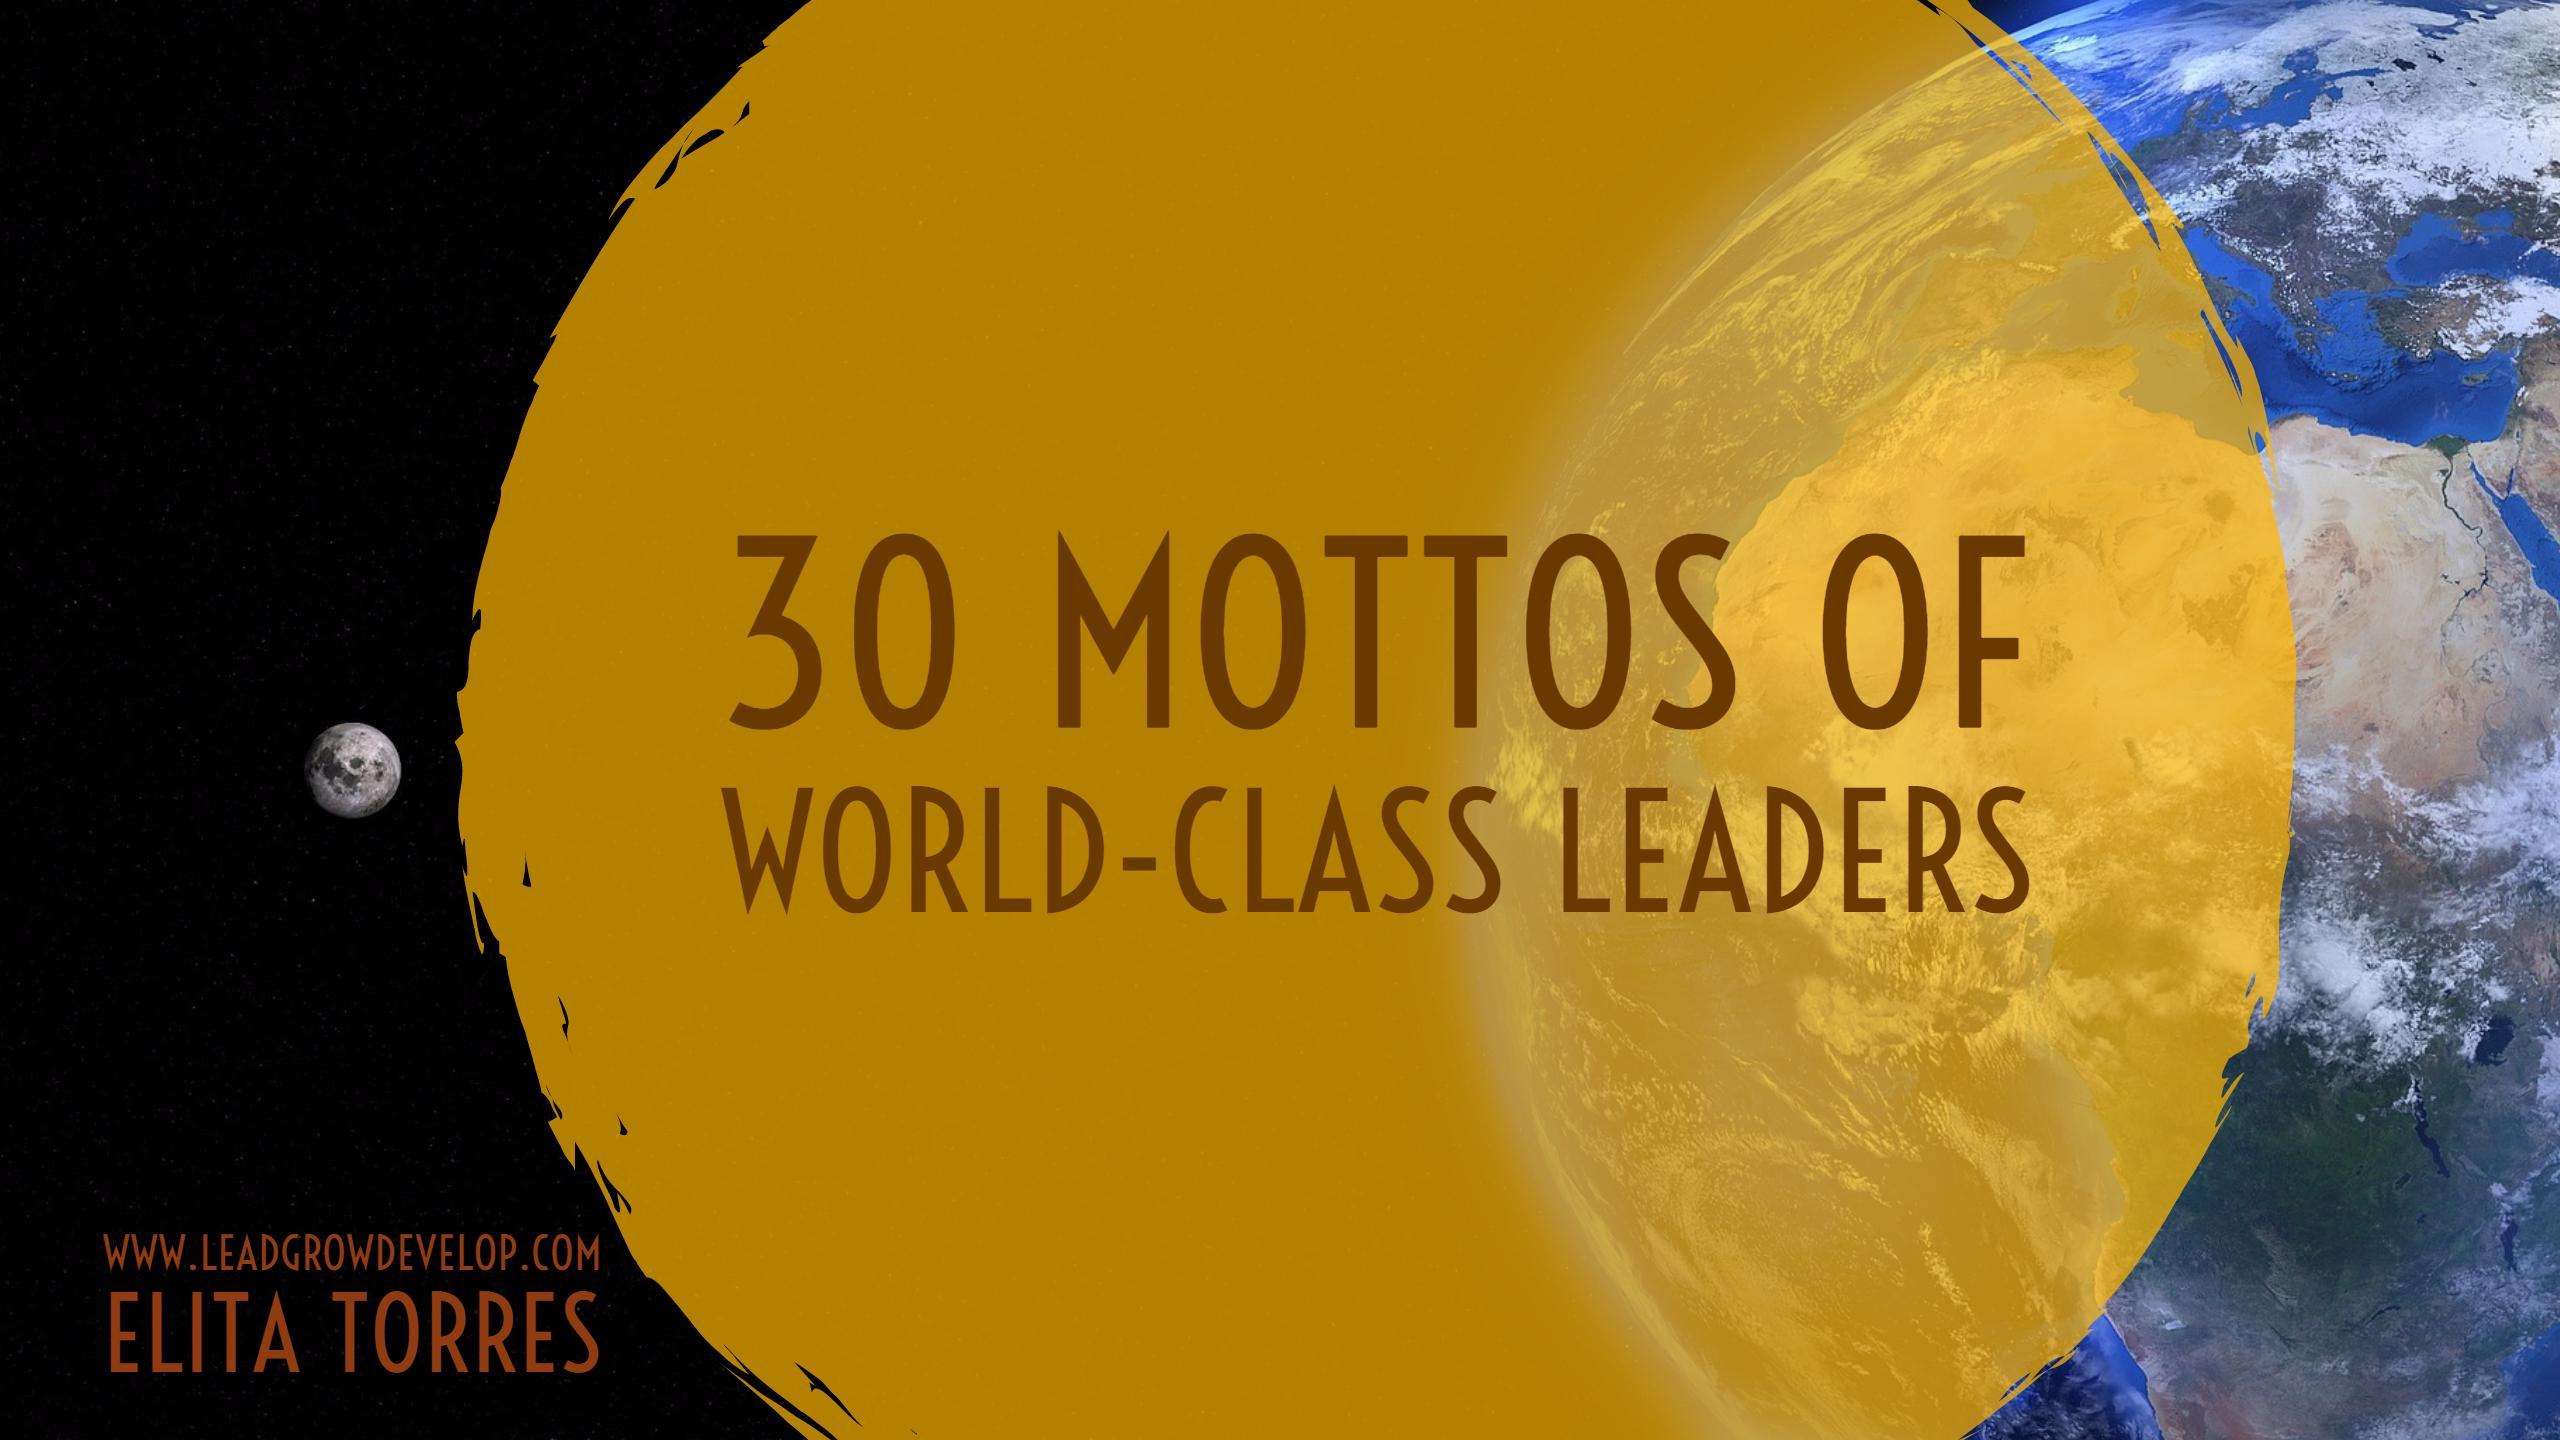 30-mottos-of-world-class-leaders